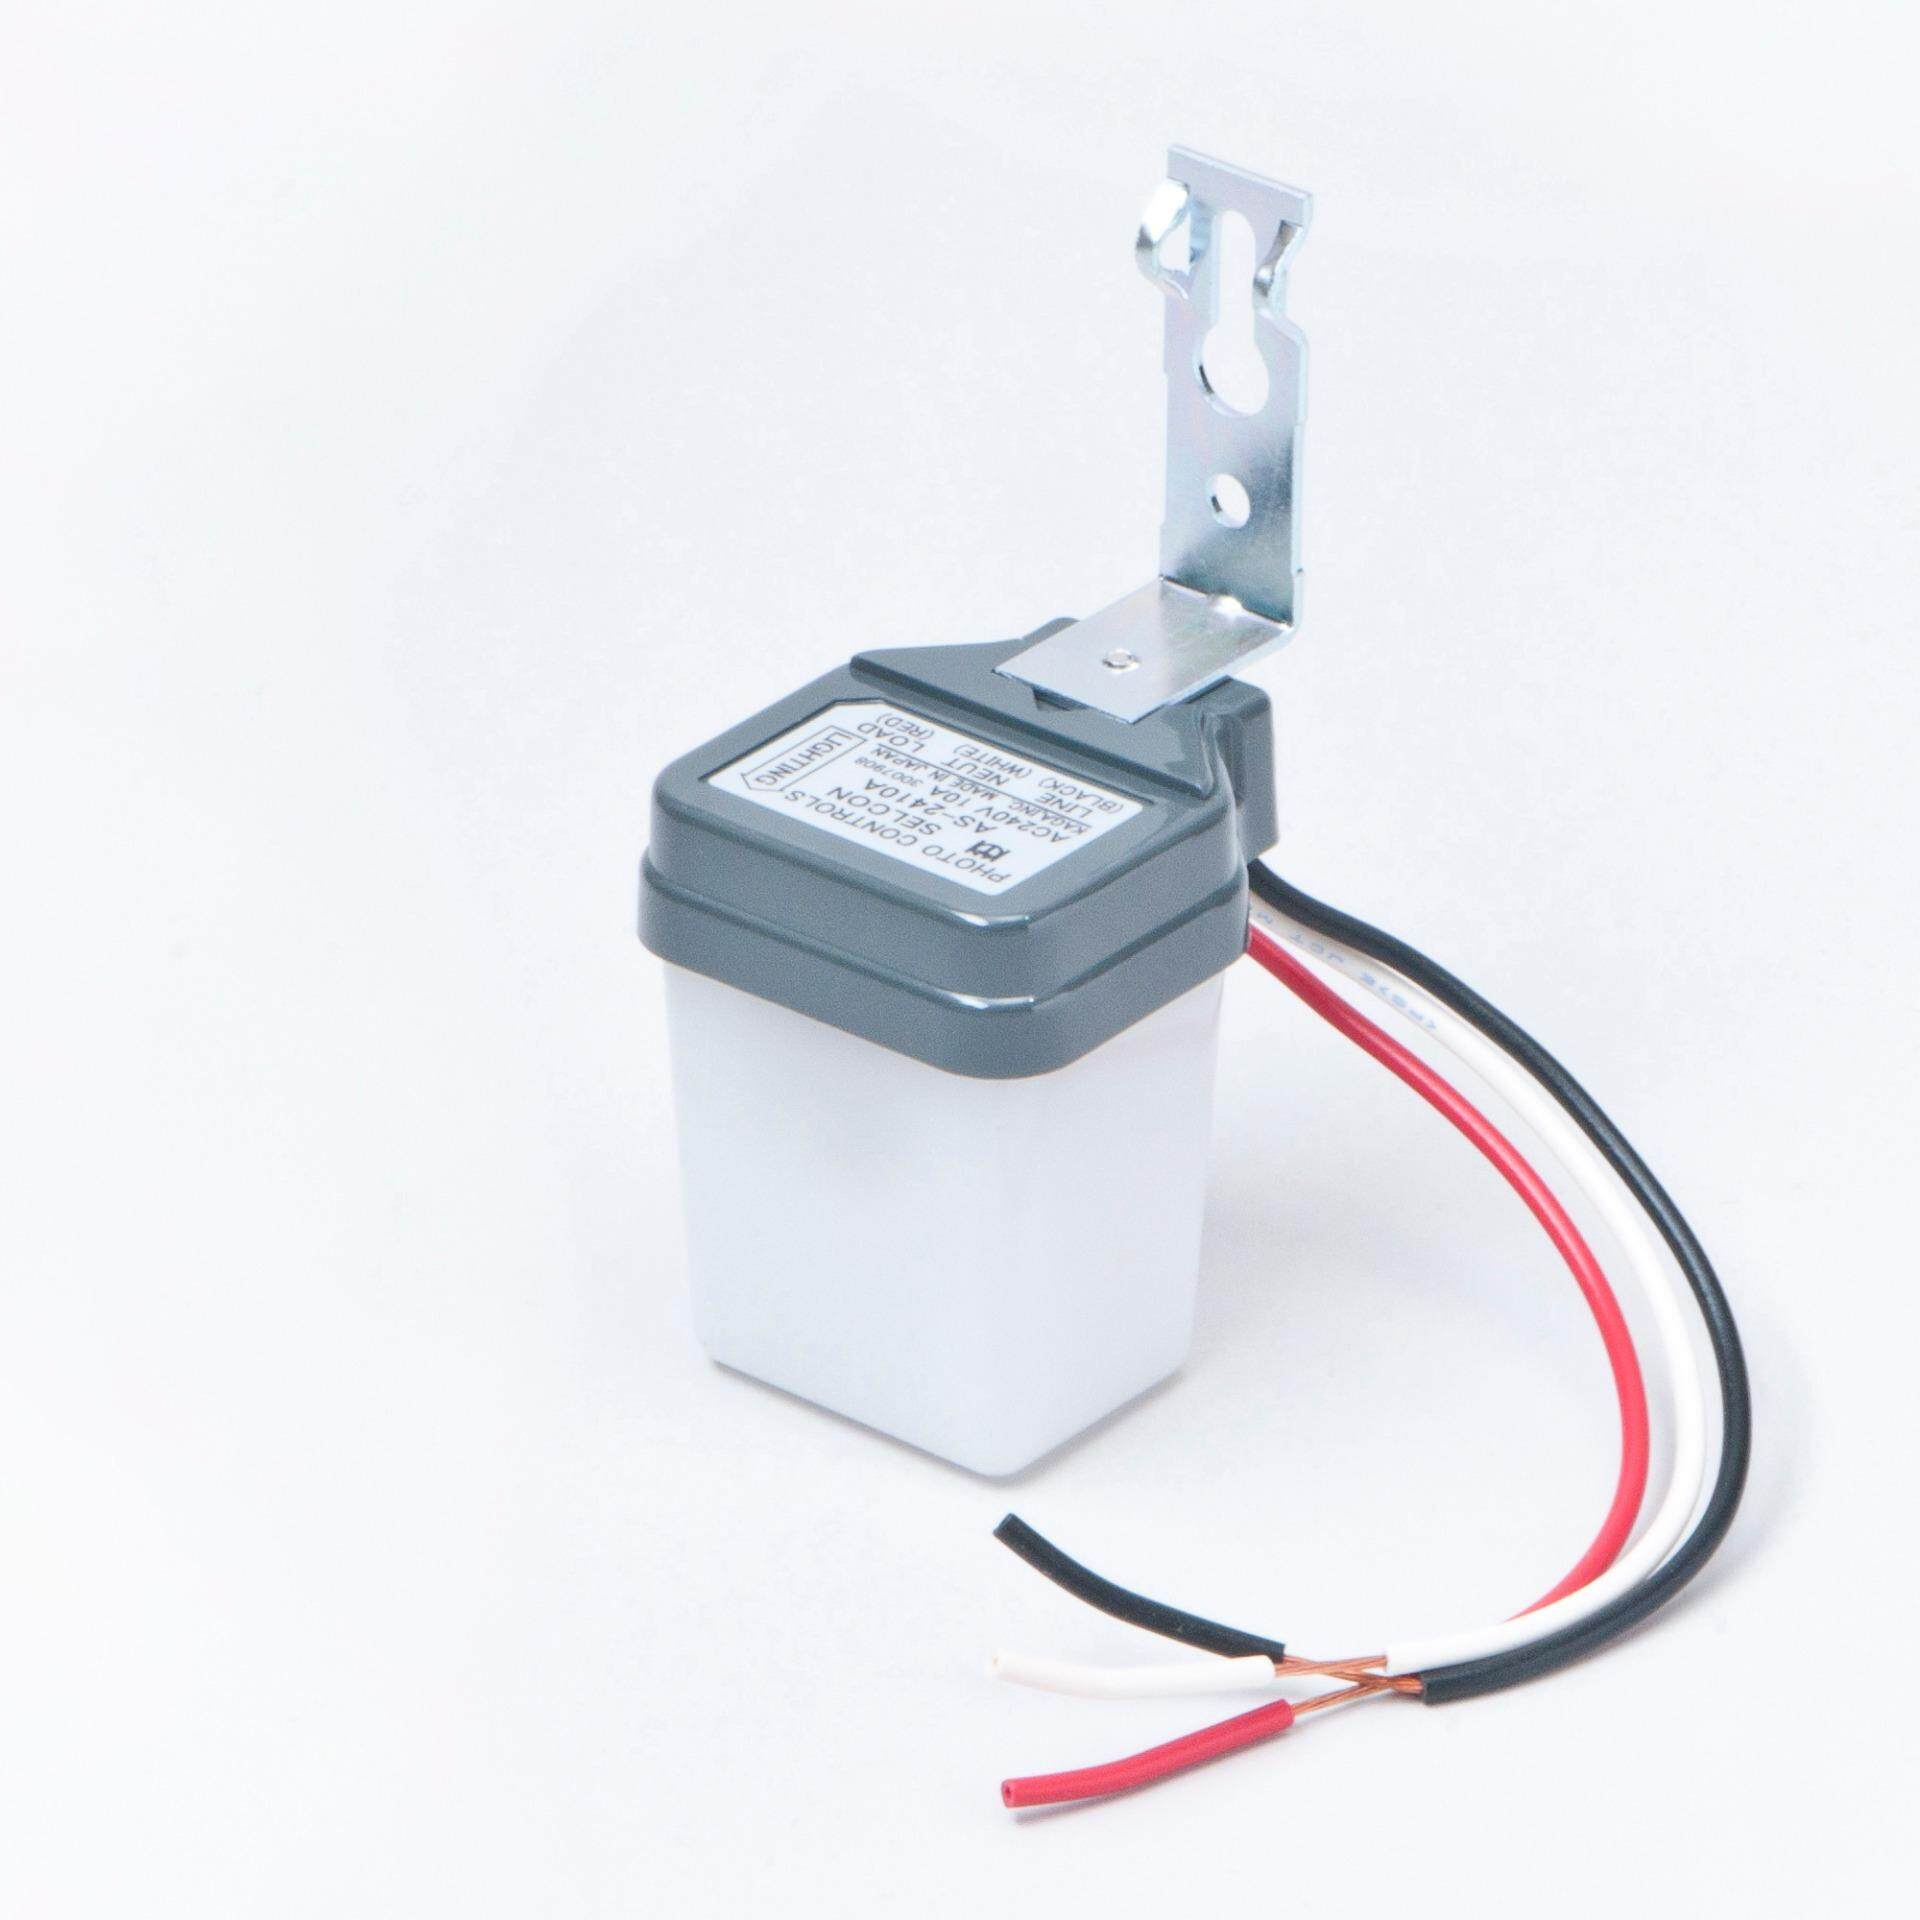 selcon photocell 10a daylight switch japan 1485253608 32724191 ad8d4e27aee21e73513abf40647d84c6 selcon photocell 10a daylight switch [japan] lazada malaysia selcon photocell wiring diagram at nearapp.co